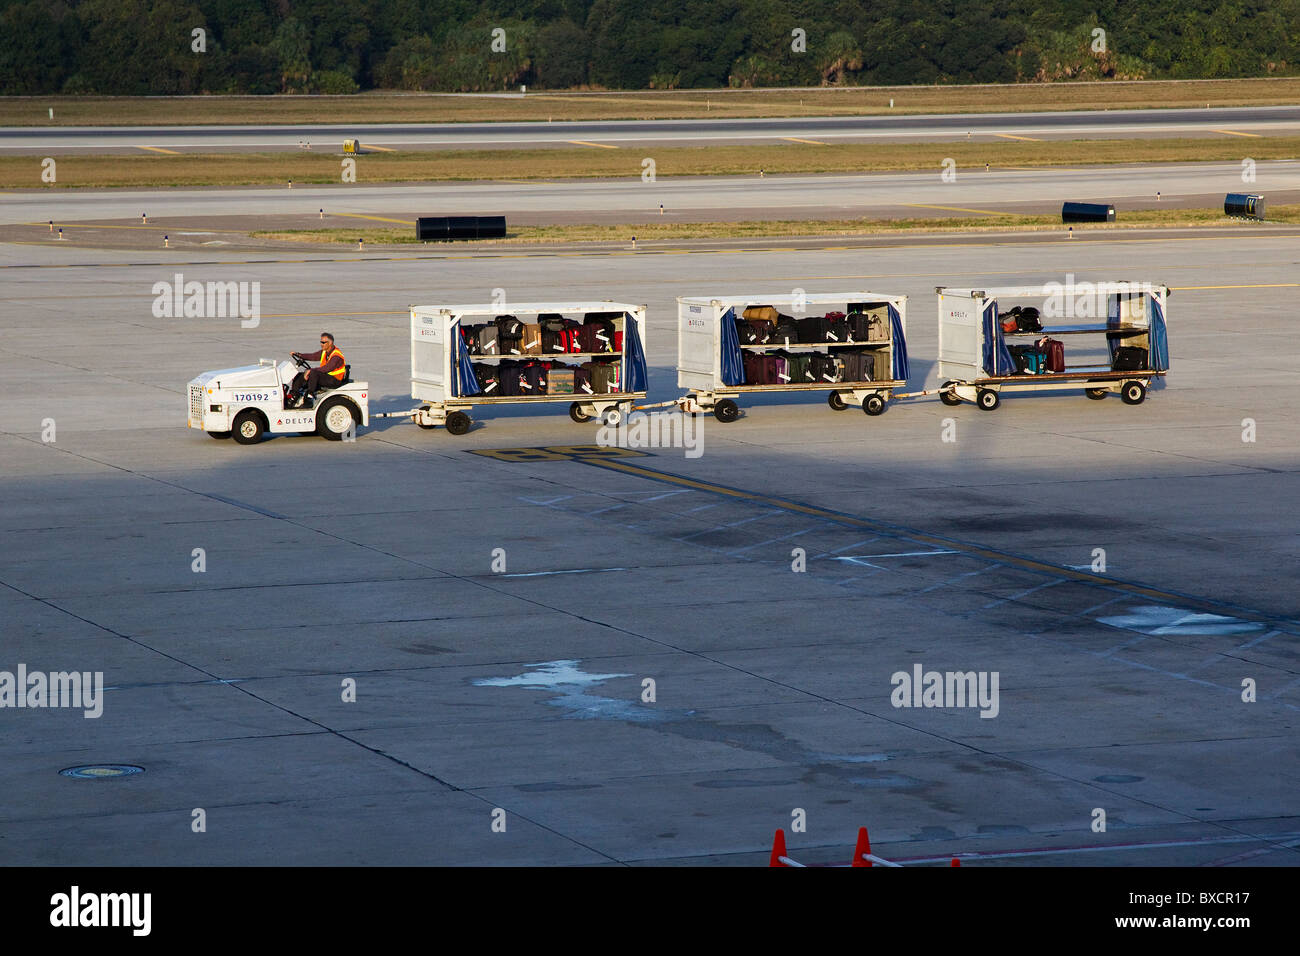 Airport worker drives airport vehicle with luggage to airplane on airport deck at Tampa International Airport, USA - Stock Image